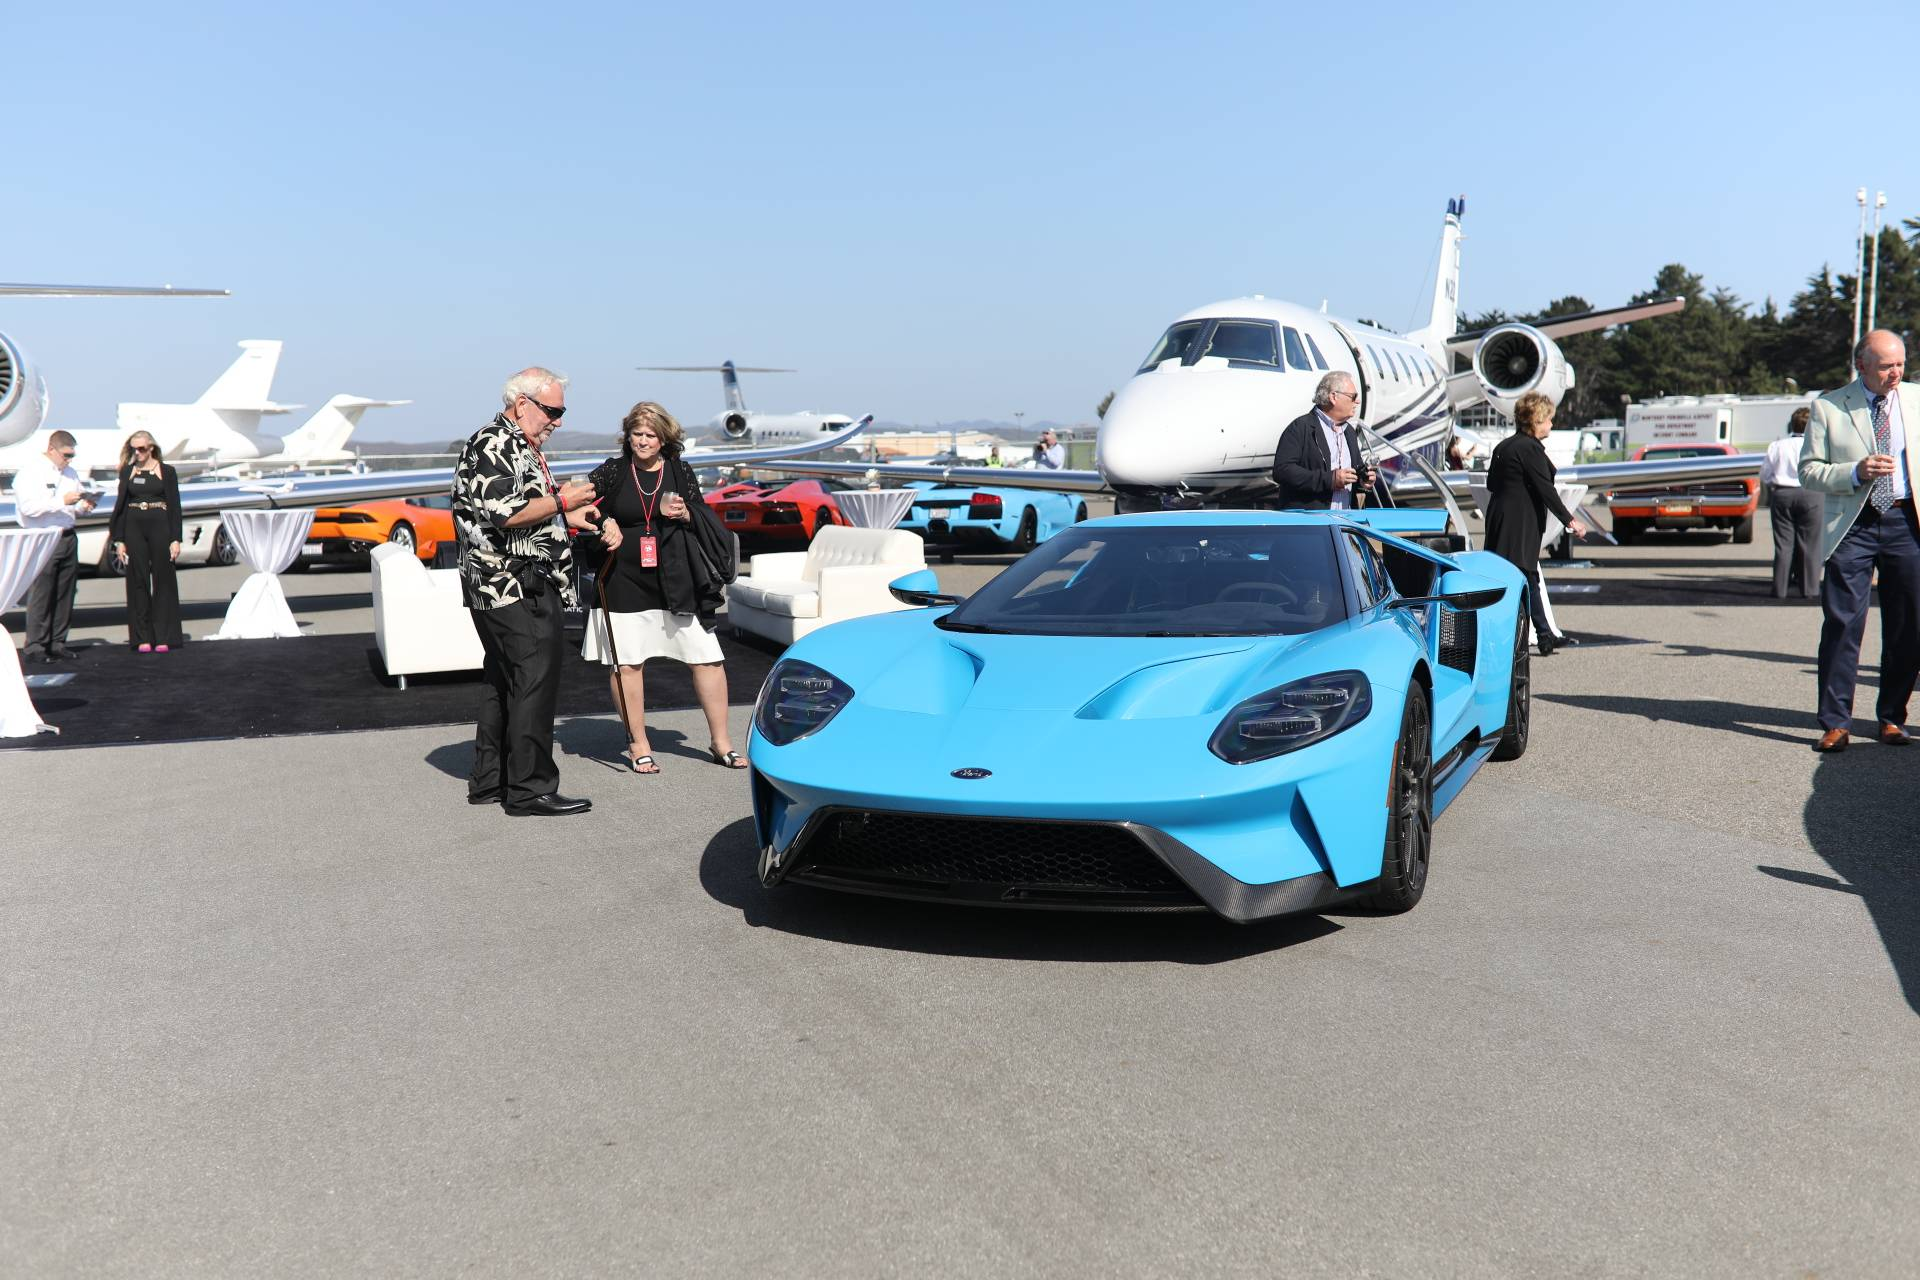 mccall diesel motor works An exotic mix of ferraris, porsches and other luxury cars mingled with jets at  mccall's motorworks revival in the runup to the pebble beach.